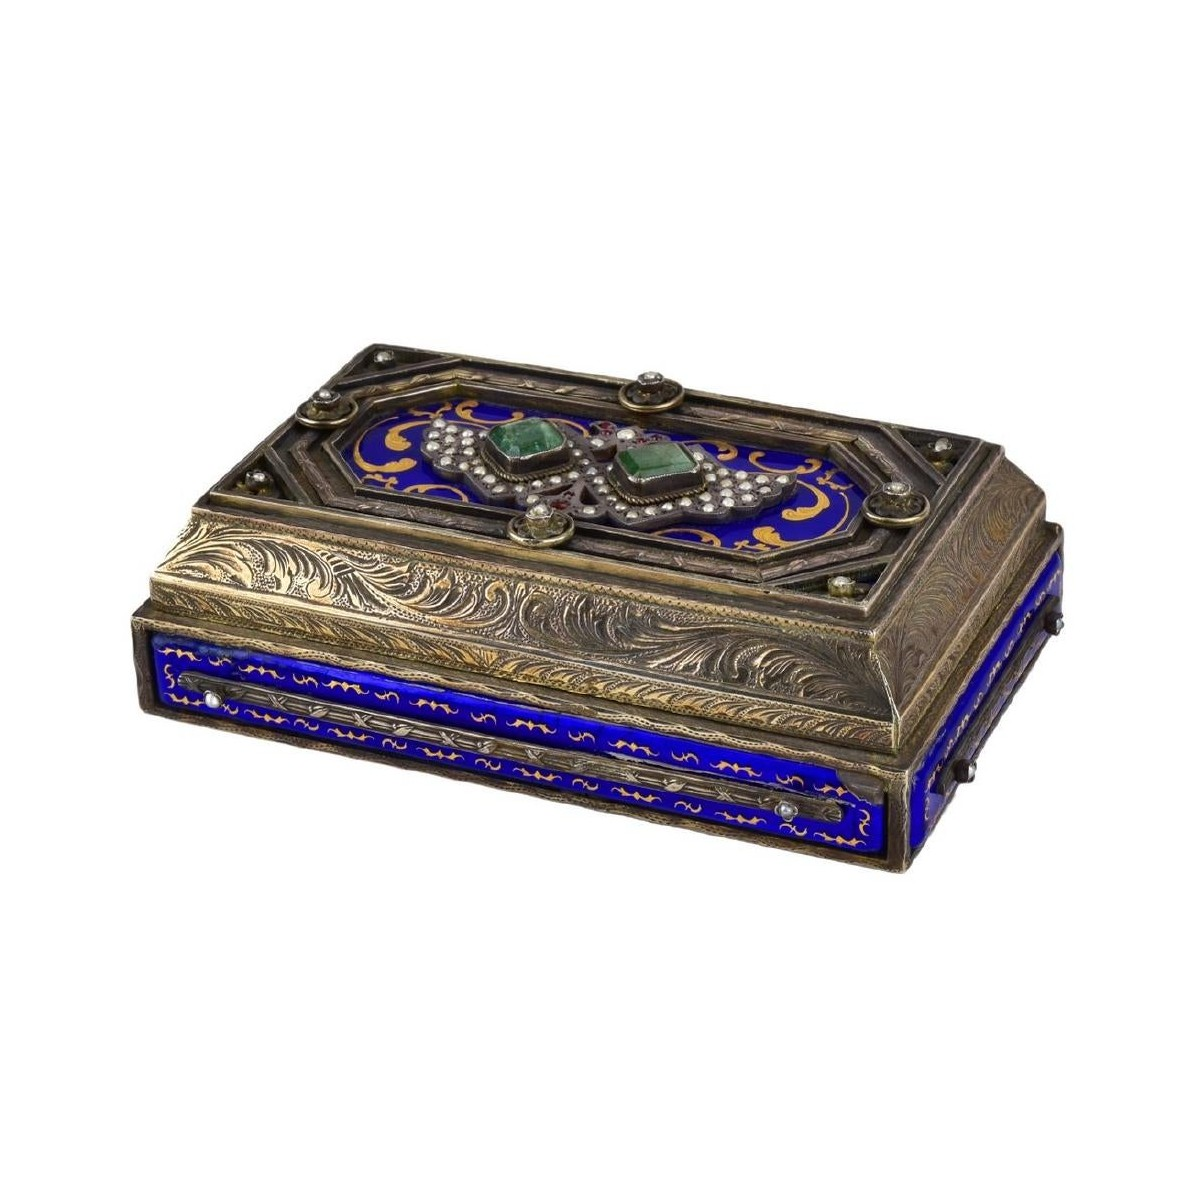 Antique Vienesse Silver and Enamel Box